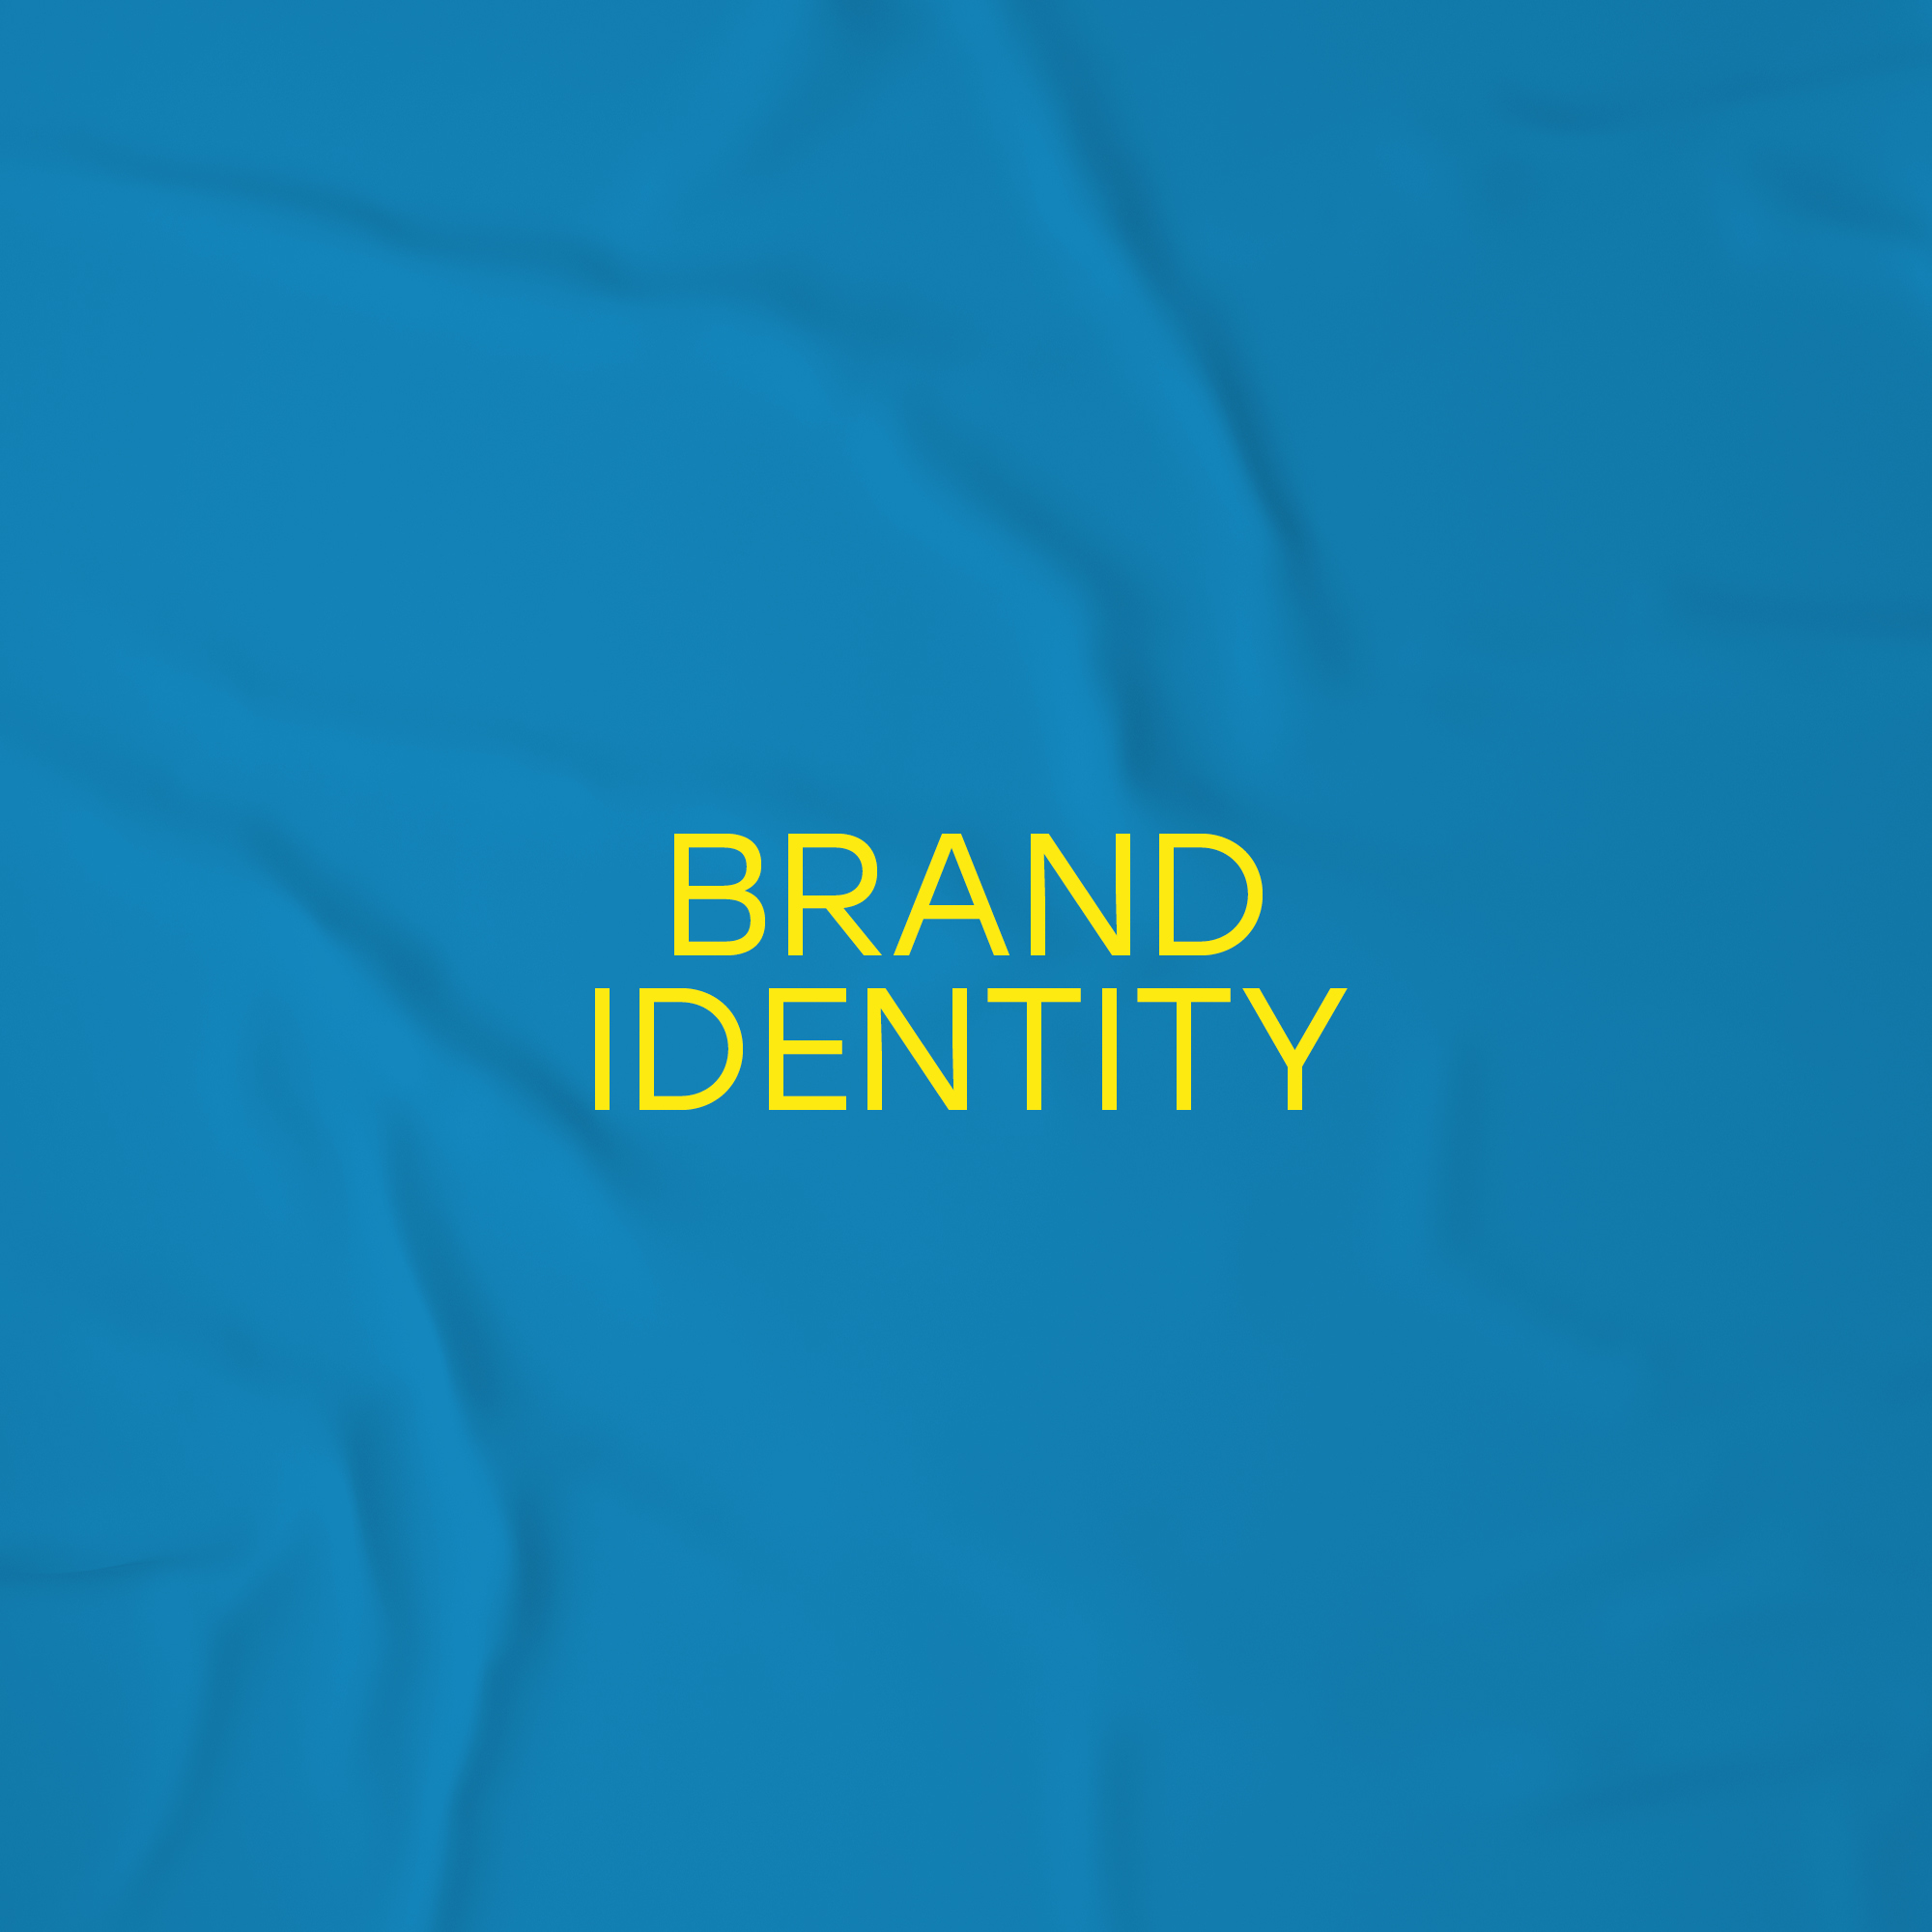 Services Icons October 2020 - Brand Identity